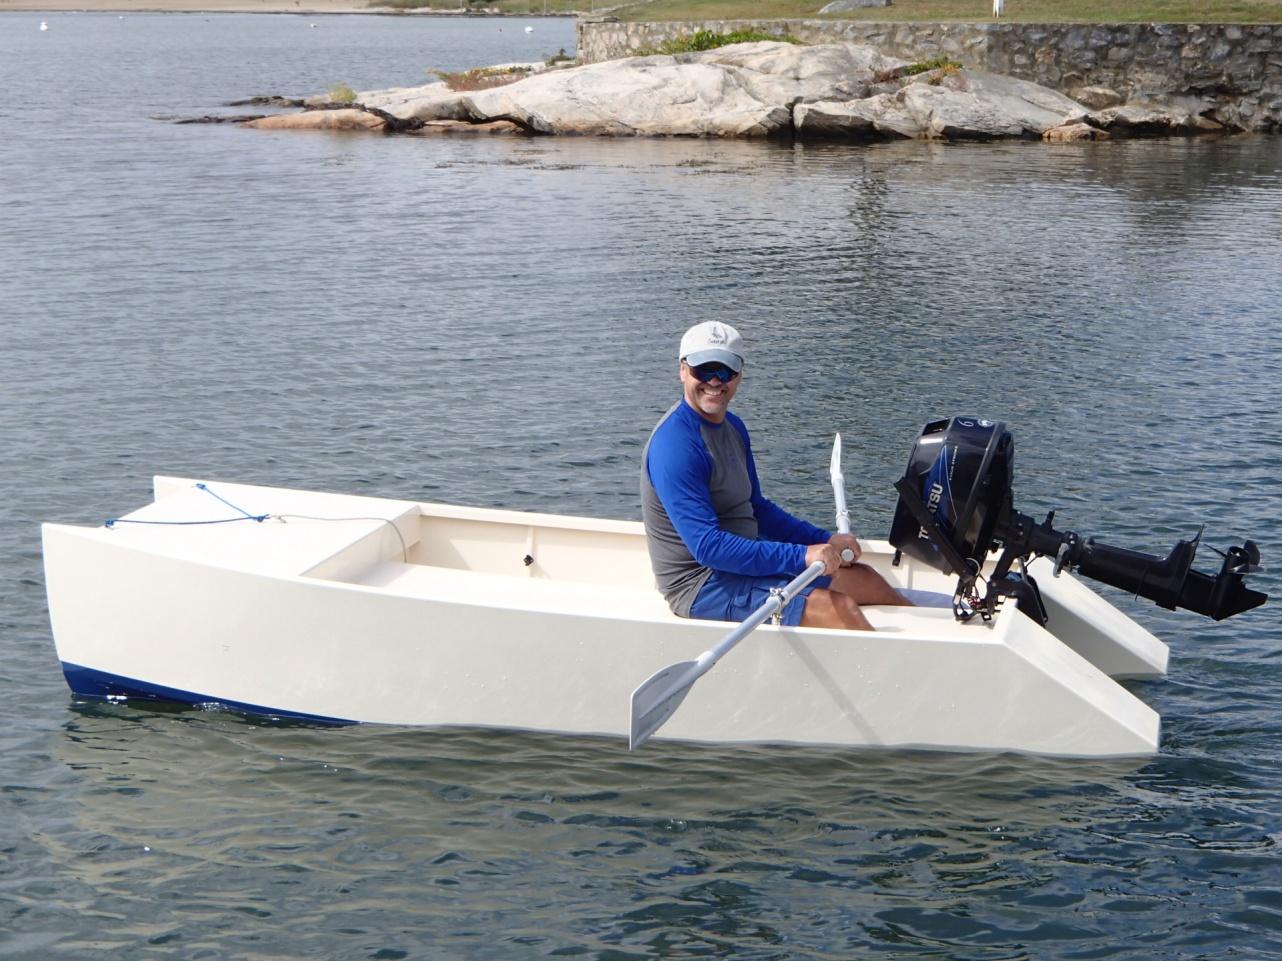 Click image for larger version  Name:Catatude Cat Dinghy1.jpg Views:314 Size:436.8 KB ID:71575